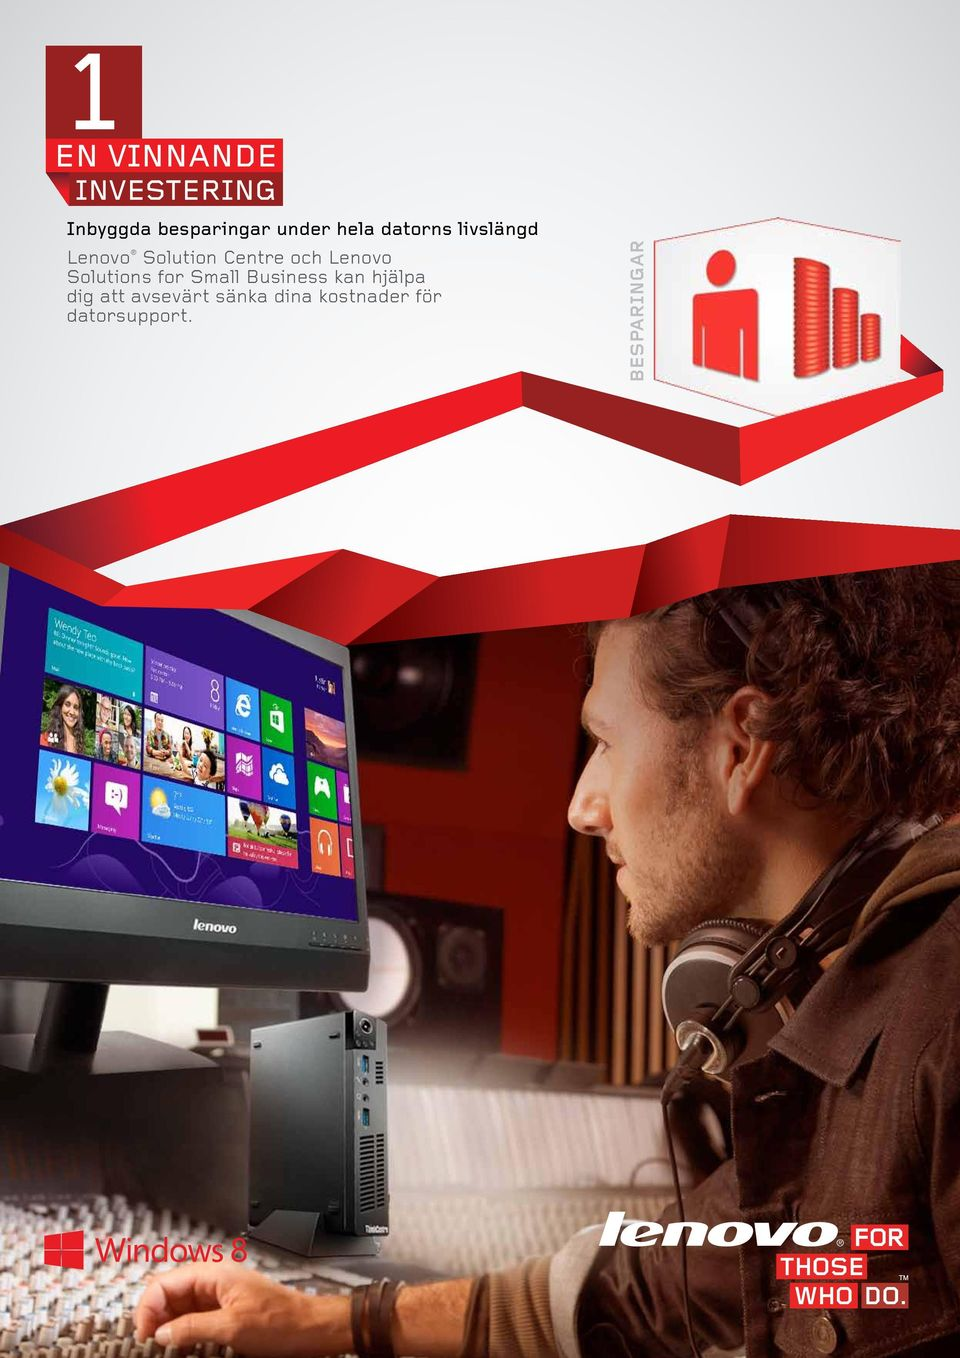 Lenovo Solutions for Small Business kan hjälpa dig att